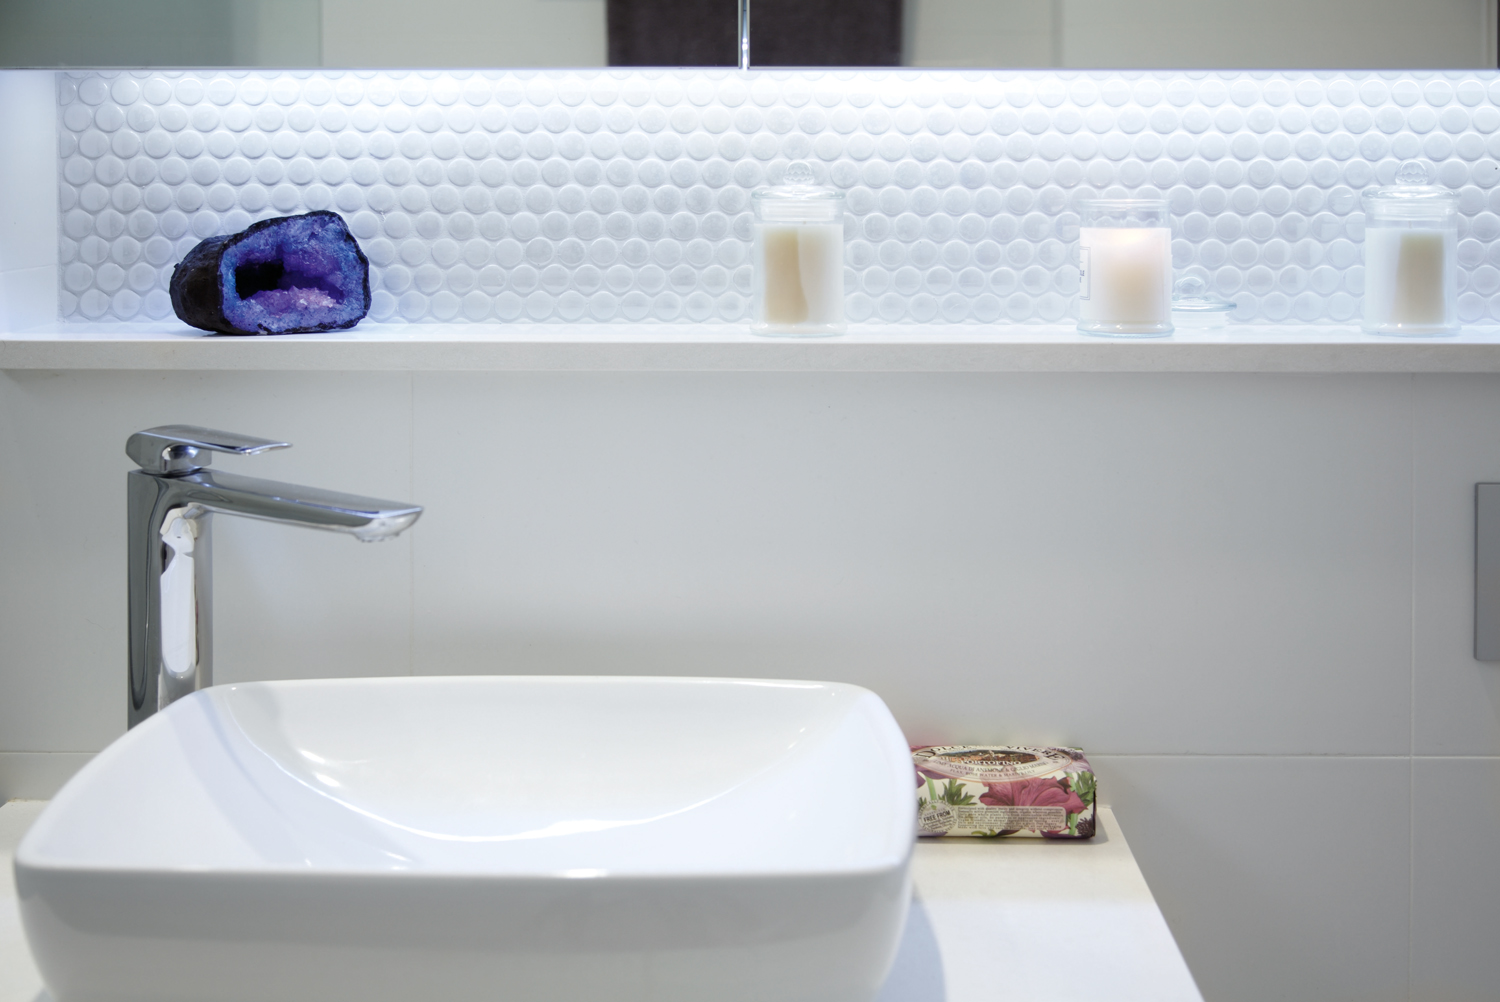 Bathroom Designs Reece - bathroom inspiration from australia reece ...